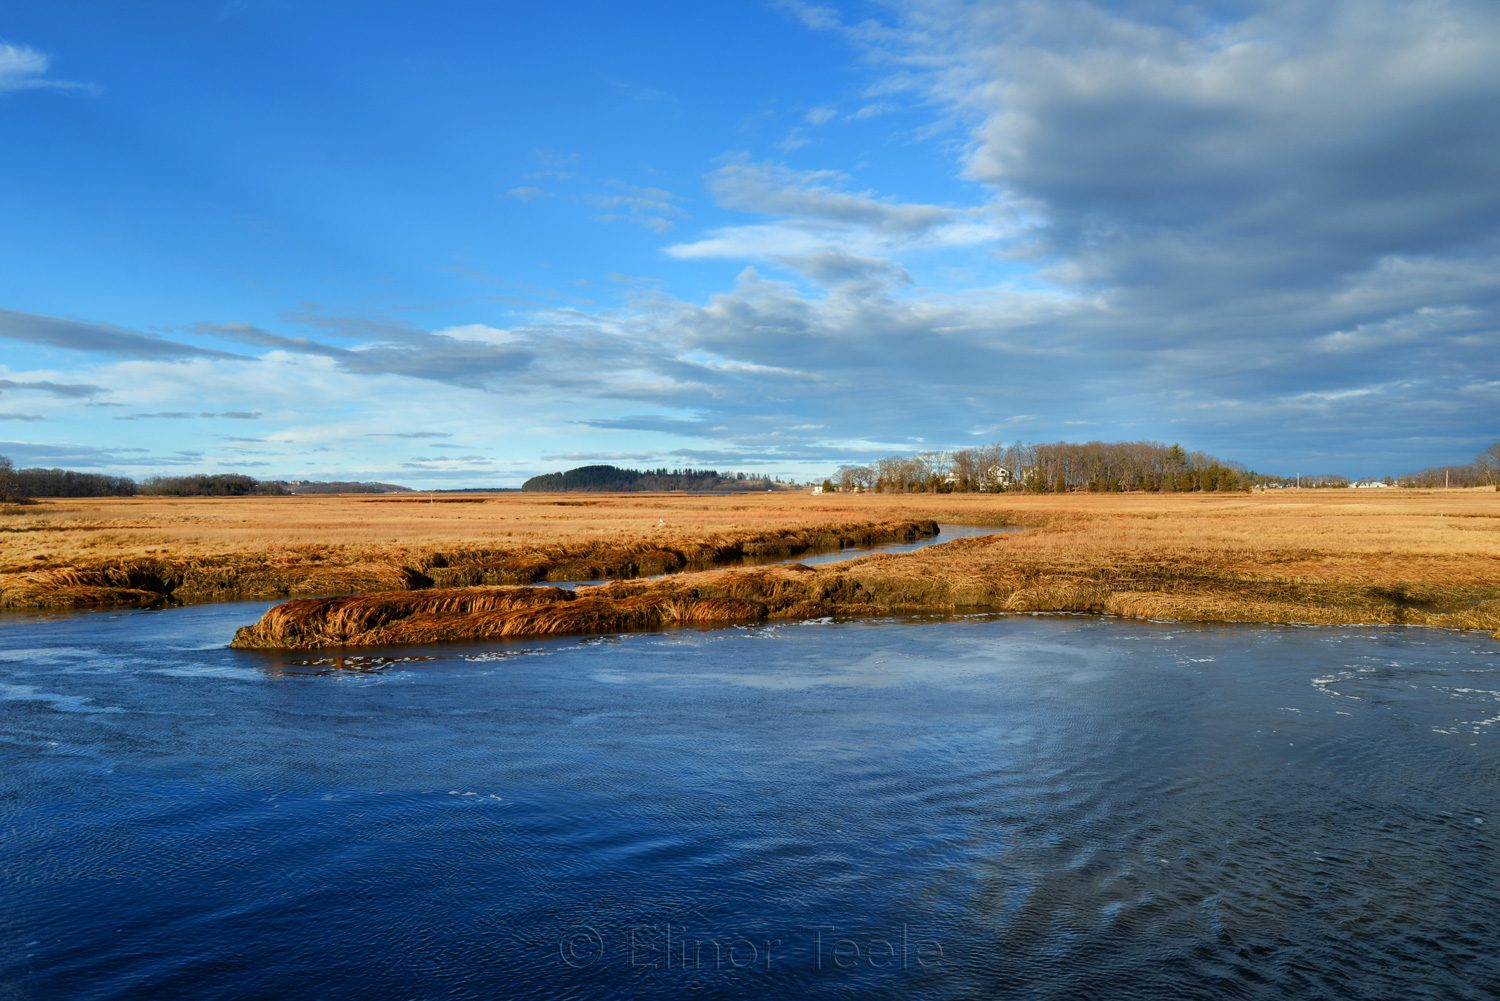 Essex Marshes Under Winter Skies, Essex MA